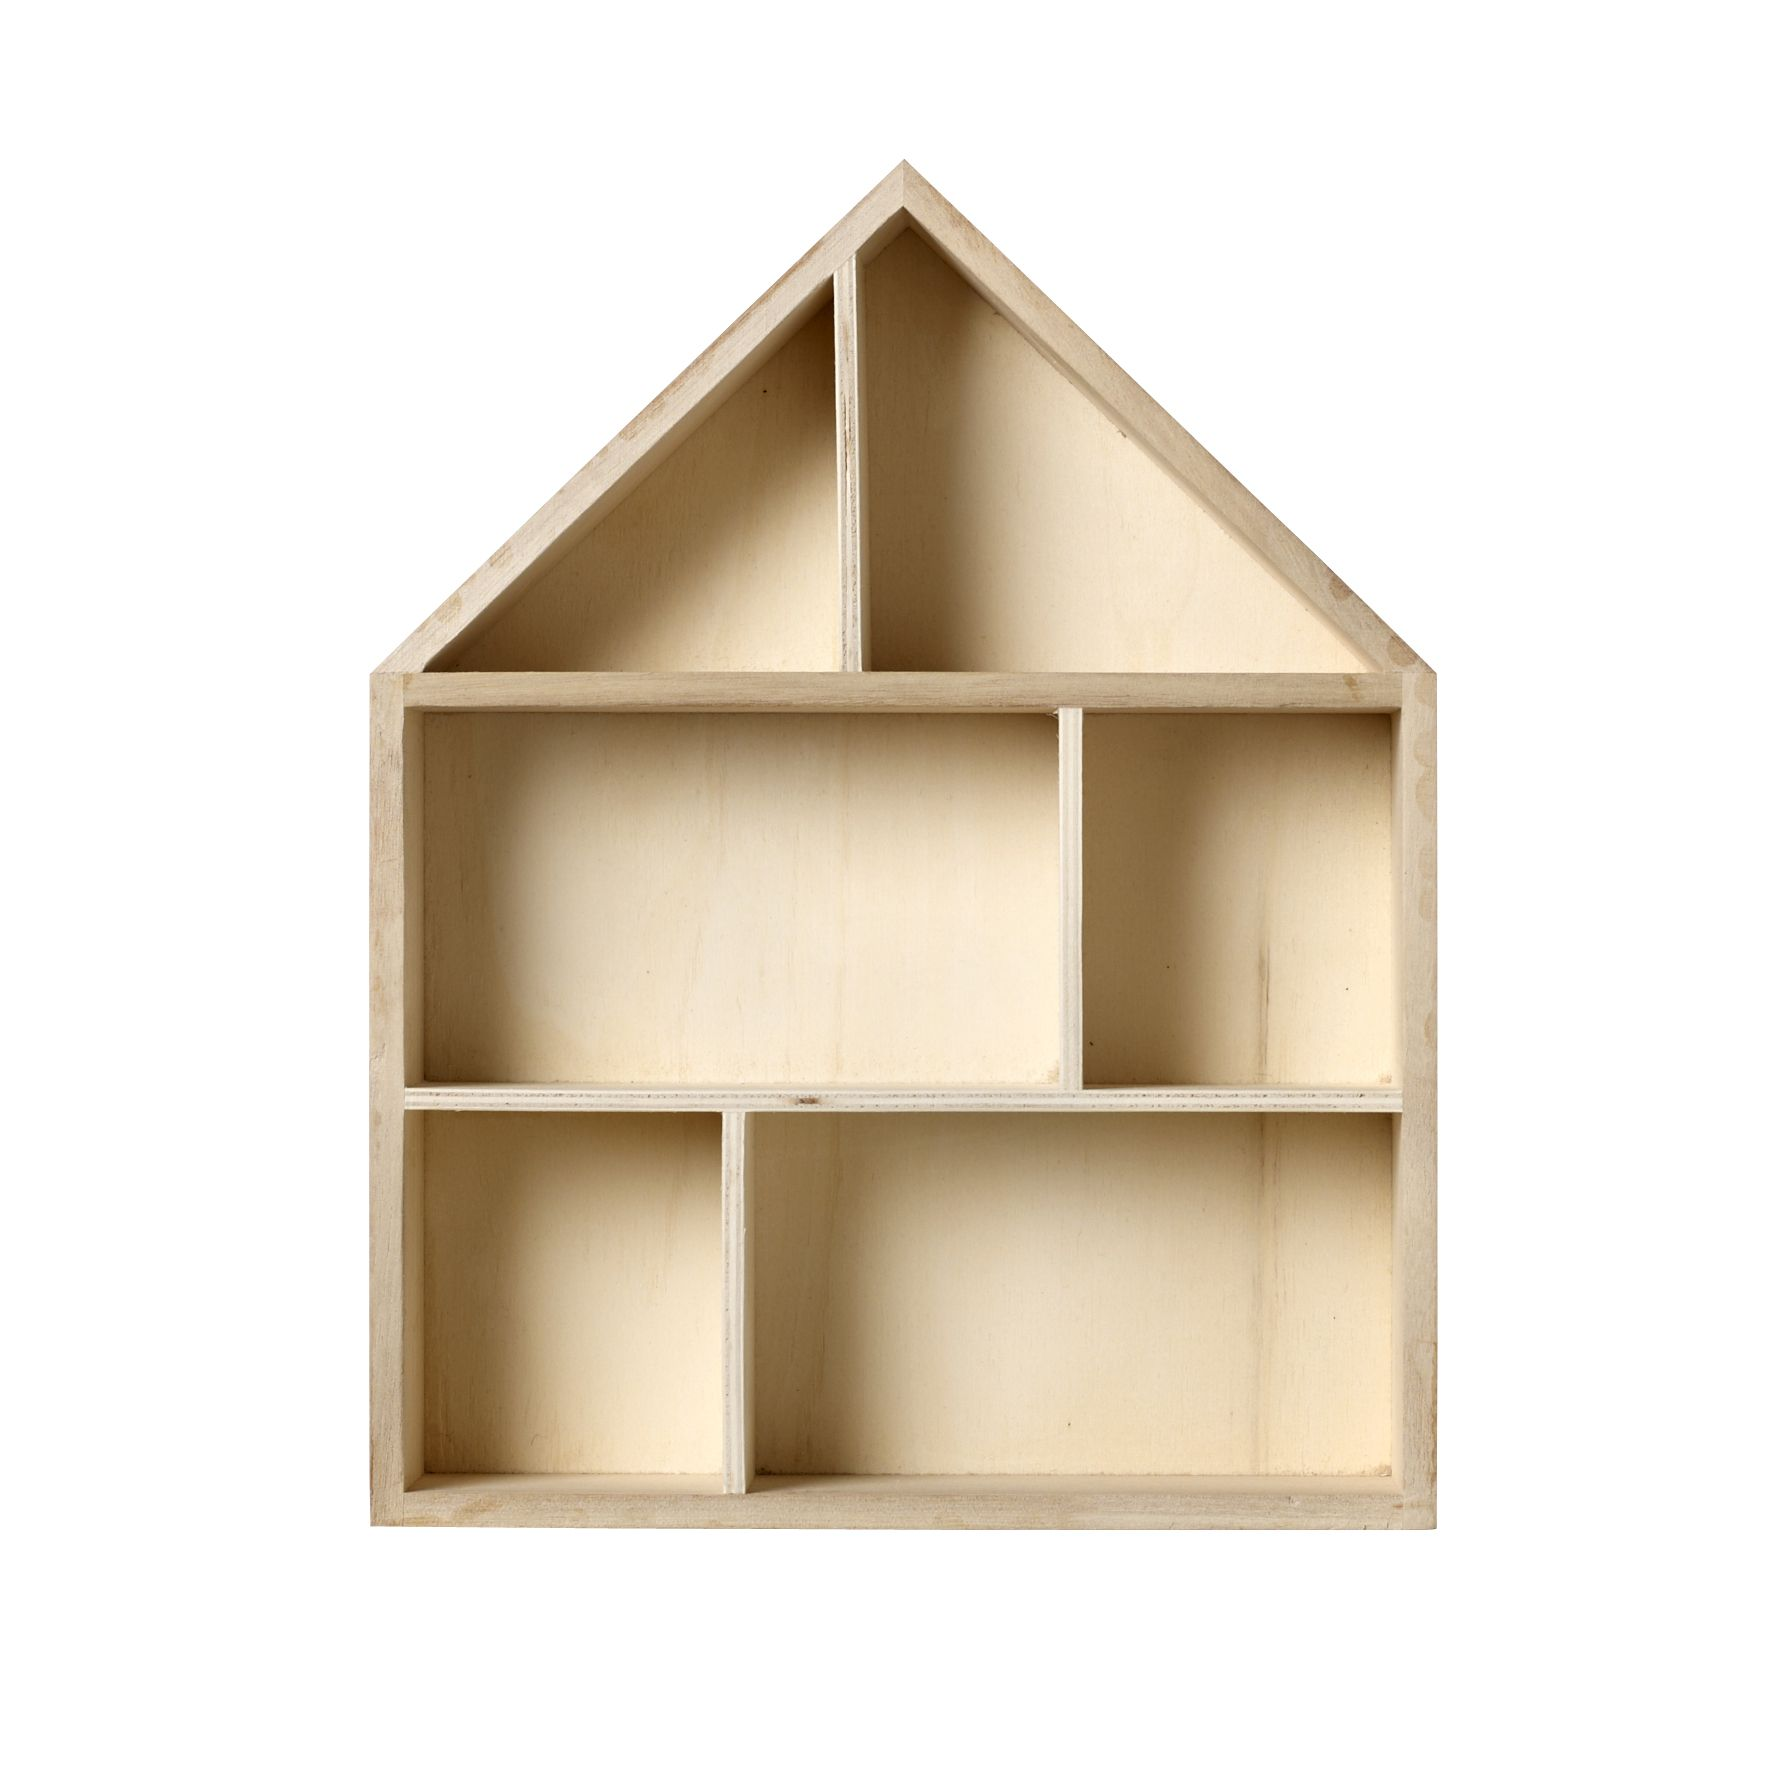 House Shaped Shadow Box Wooden Display Box Box Houses Decor